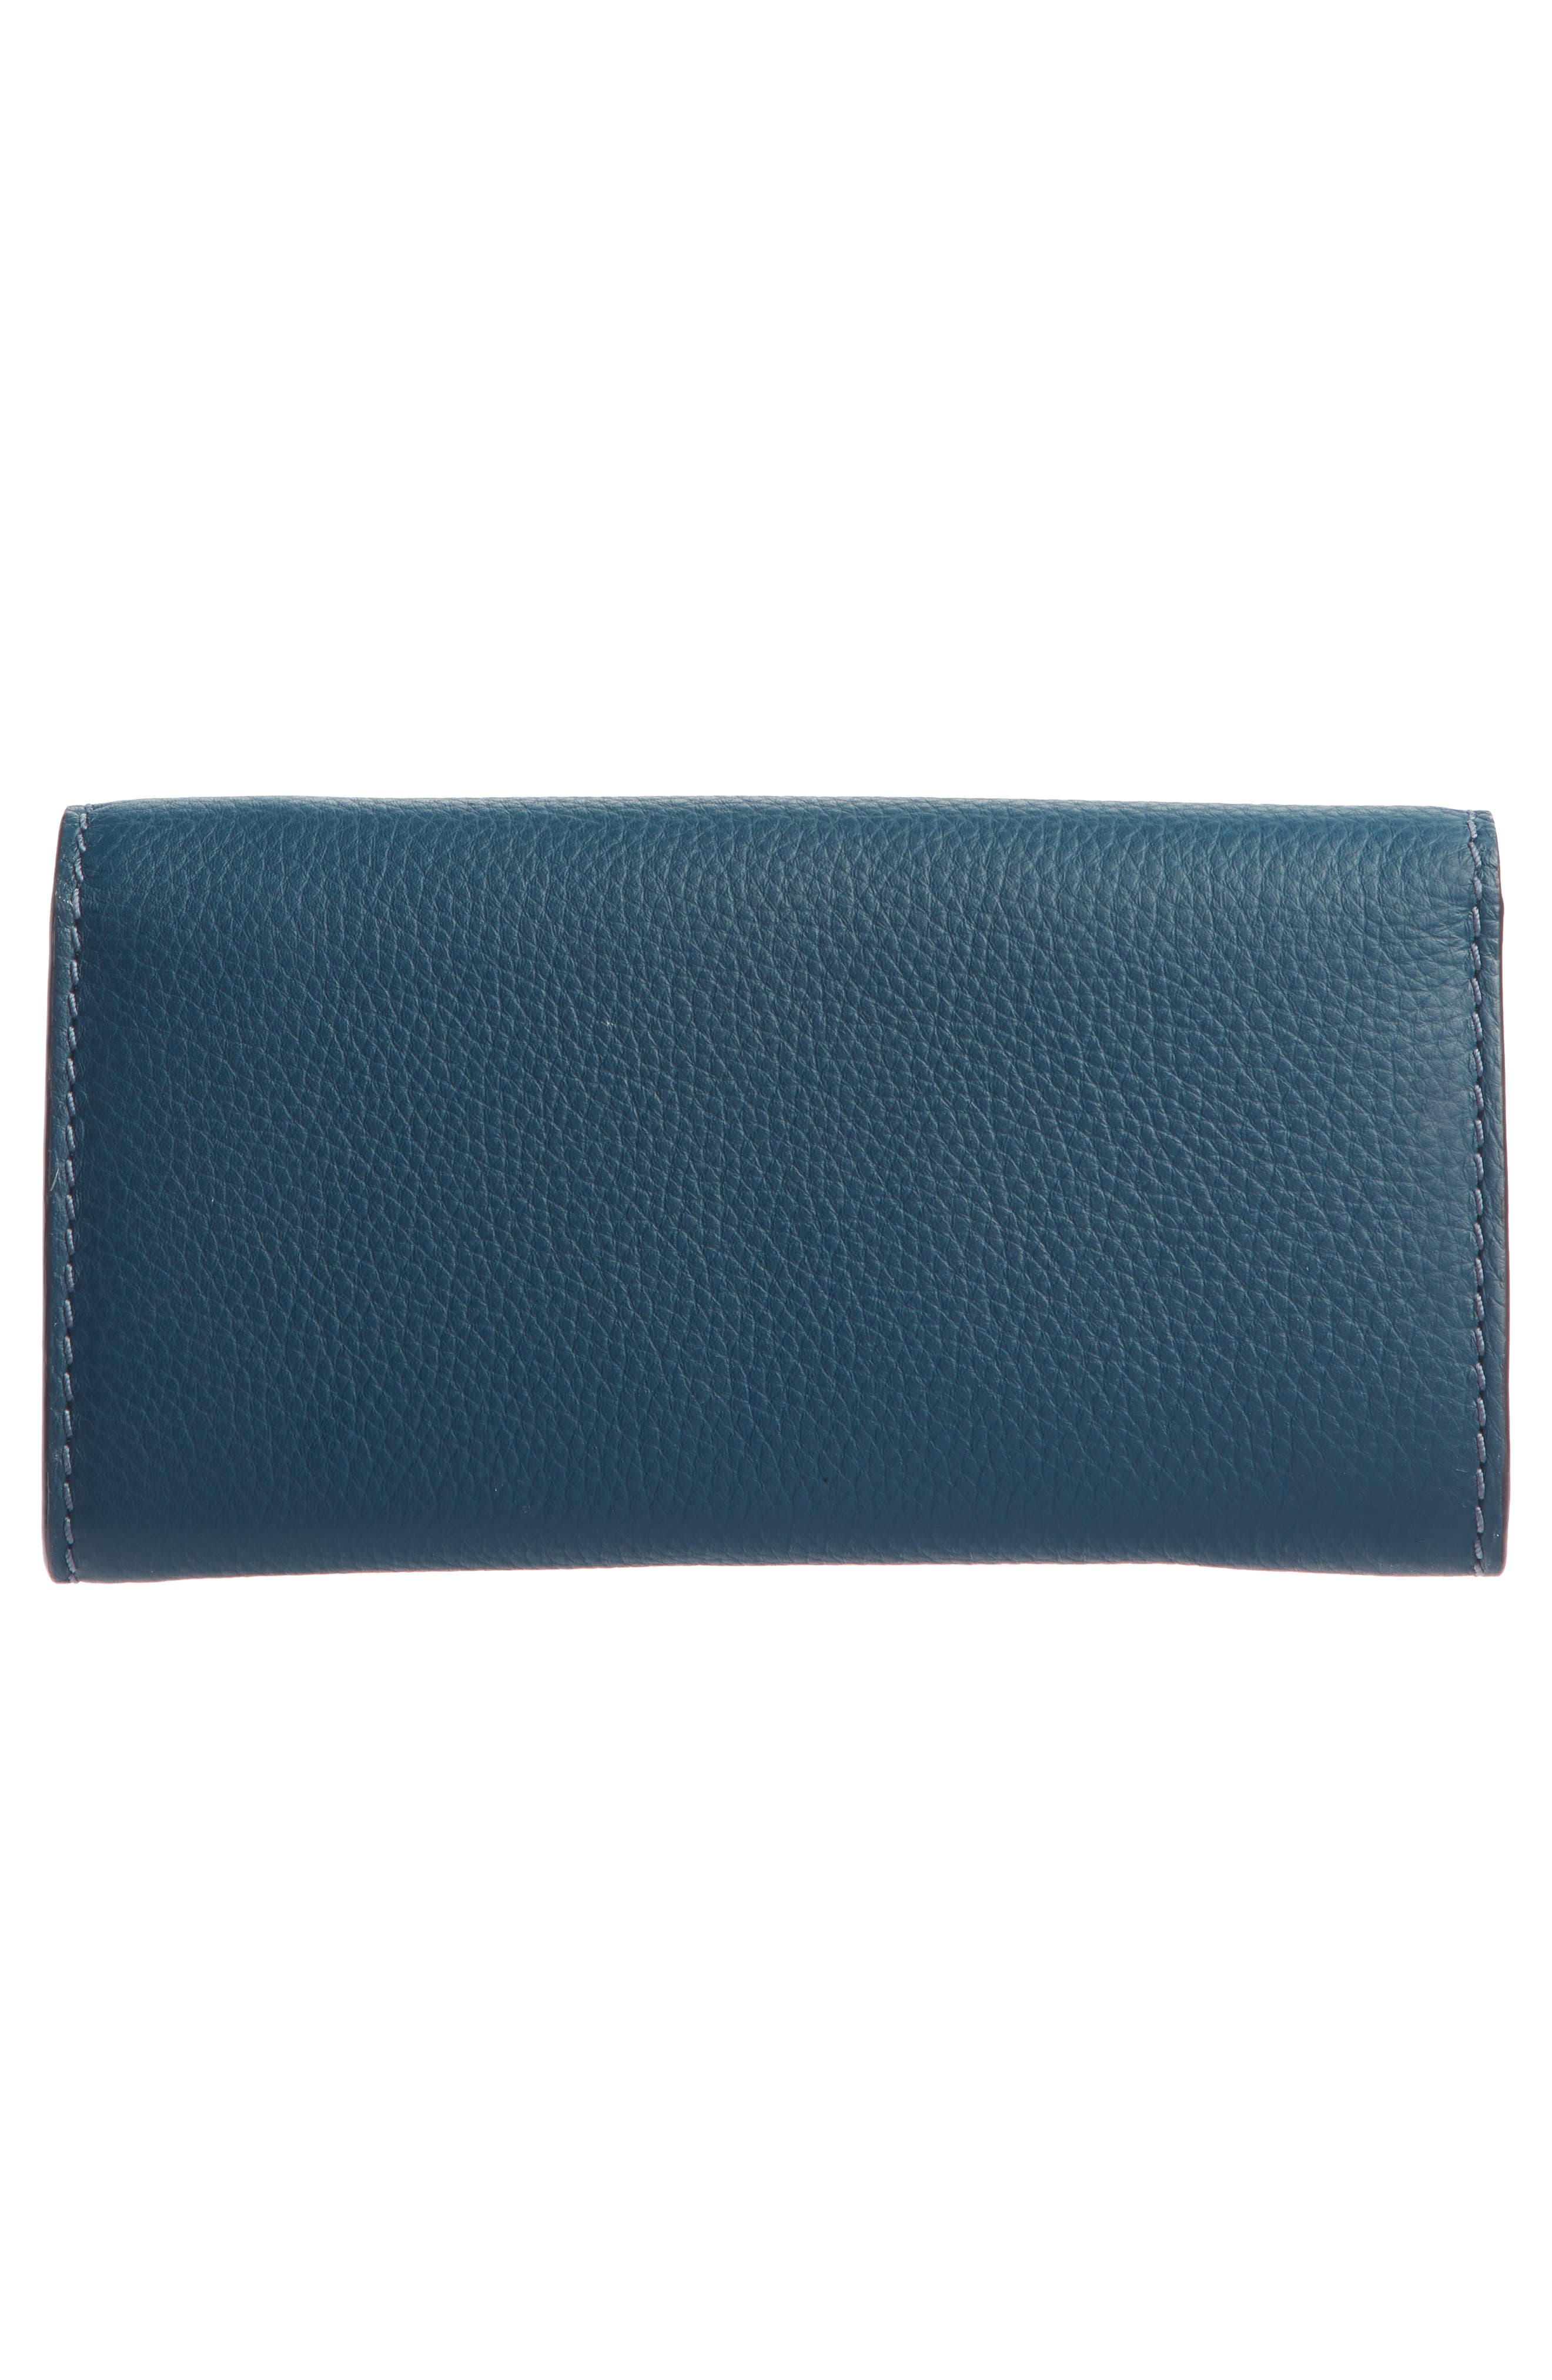 CHLOÉ, Marcie - Long Leather Flap Wallet, Alternate thumbnail 2, color, NAVY INK